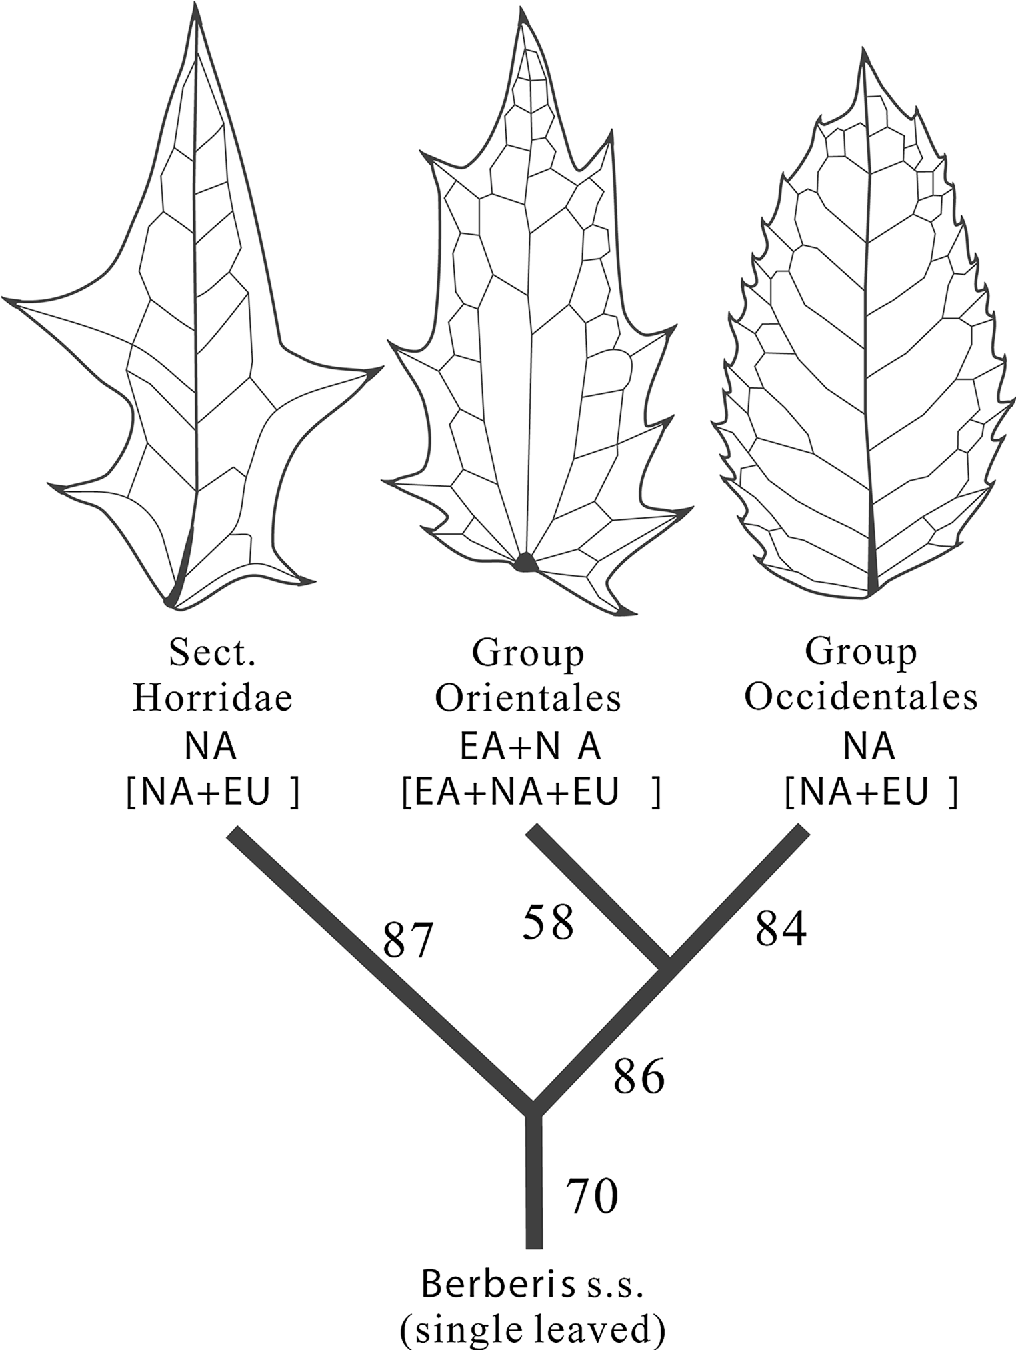 figure 1 from the oldest mahonia berberidaceae fossil from east Types of Ferns fig 1 phylogeographic relationships in berberidaceae based on kim et al 2004